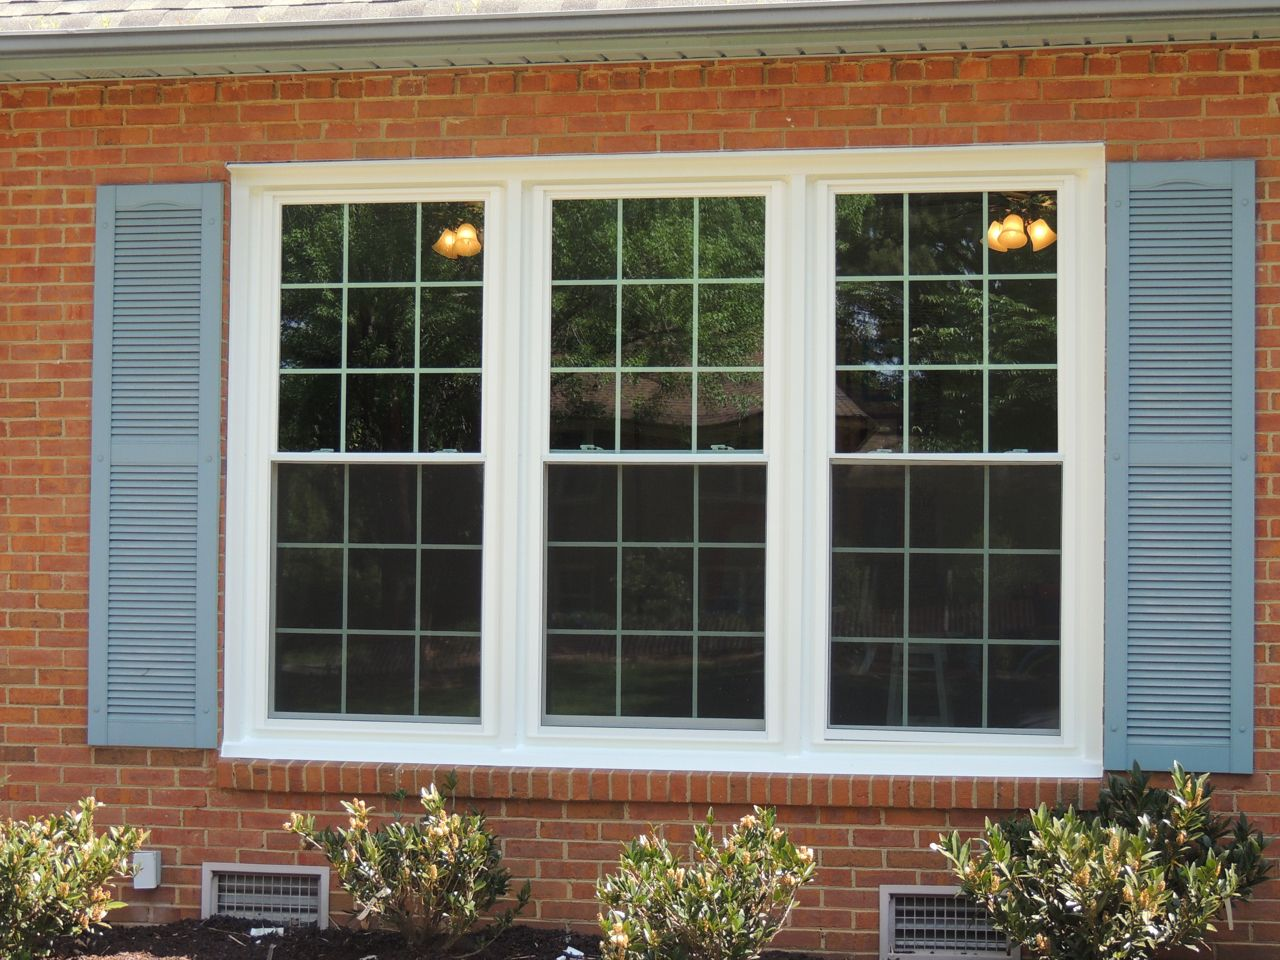 The Old Windows Were Painted Blue And Covered With Brown